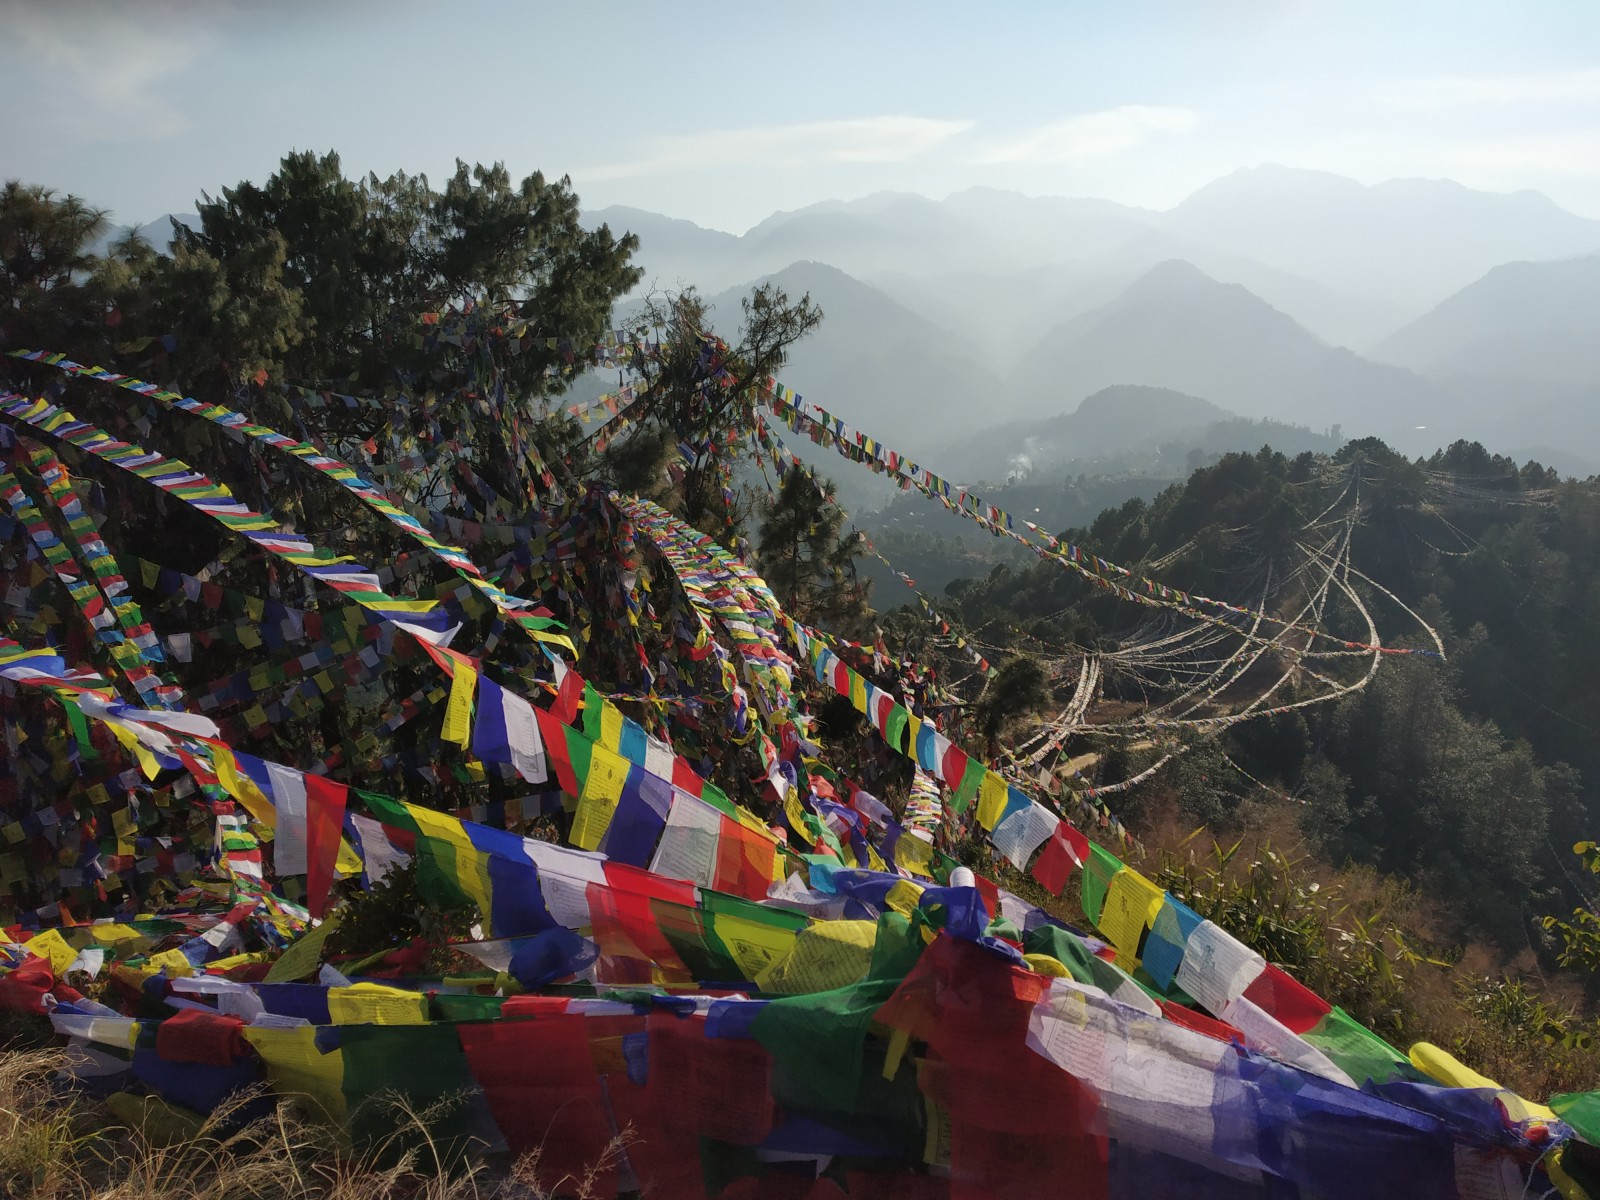 Prayer flags at Namo Buddha sending blessings around the world